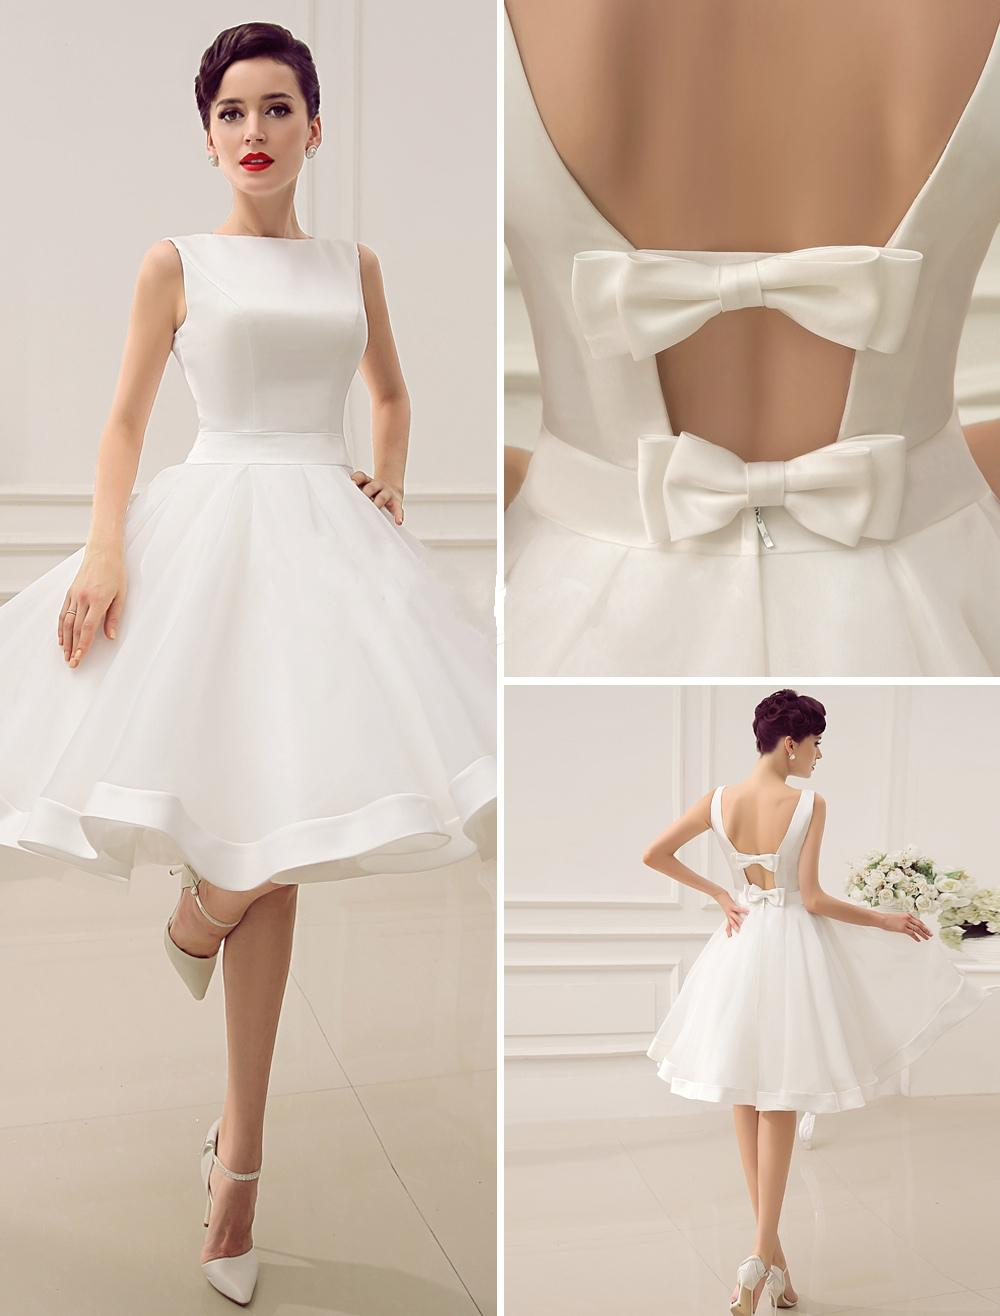 2015 Short Wedding Dresses Vintage Bateau Neckline Deep V Back Little Bridal With Bow Summer Gowns Knee Length Dress Boutique